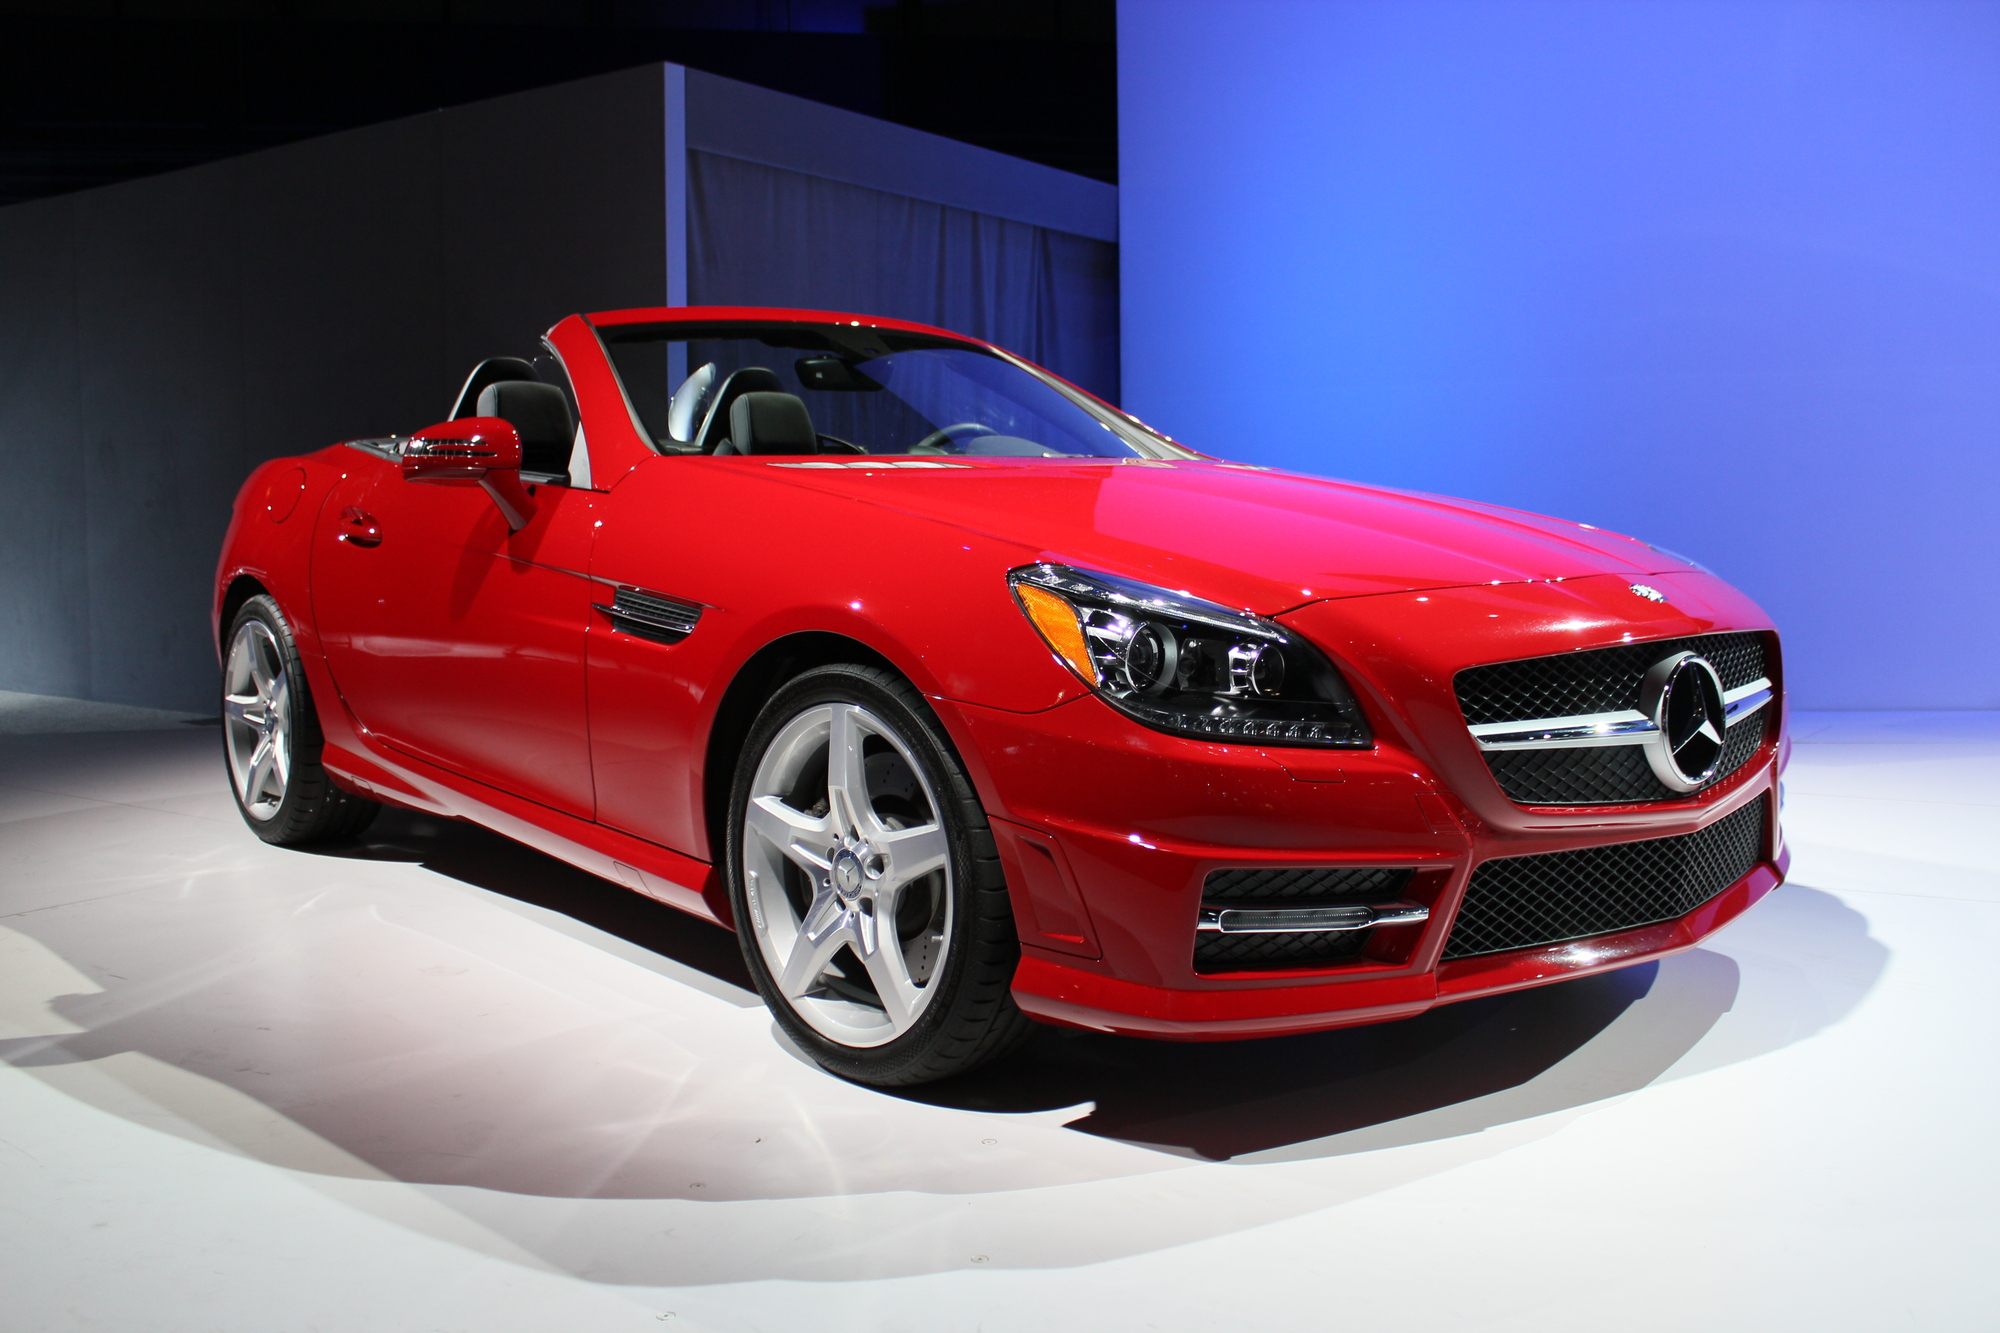 2012 Mercedes-Benz SLK350 Priced From $55,675, 2012 CLS ...